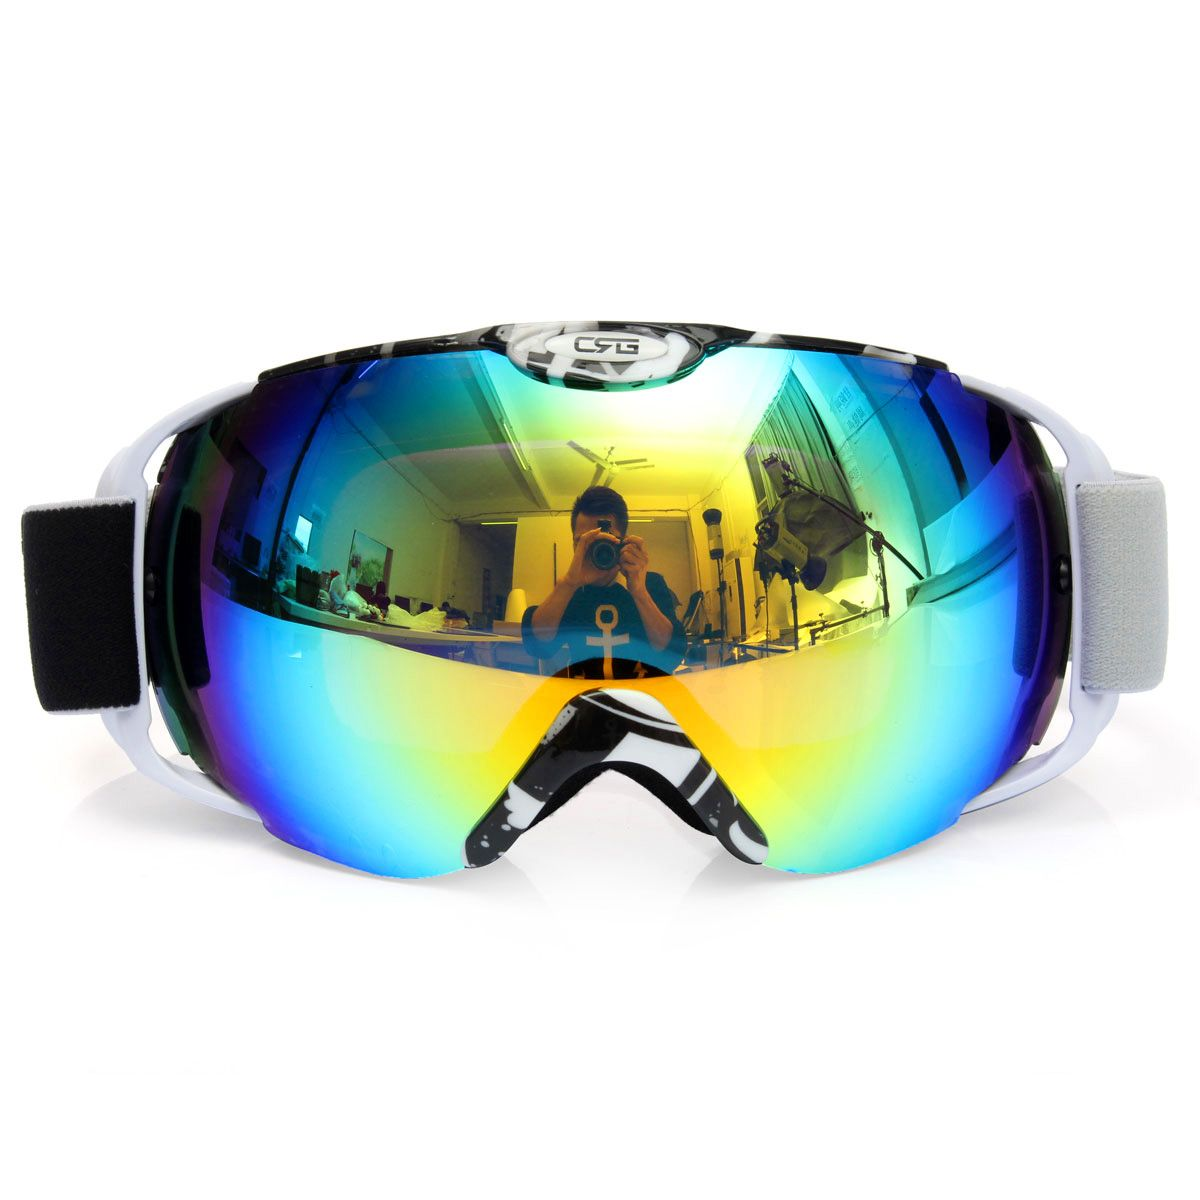 Unisex Adults Professional Spherical Anti-fog Dual Lens Snowboard Ski Goggle Eyewear